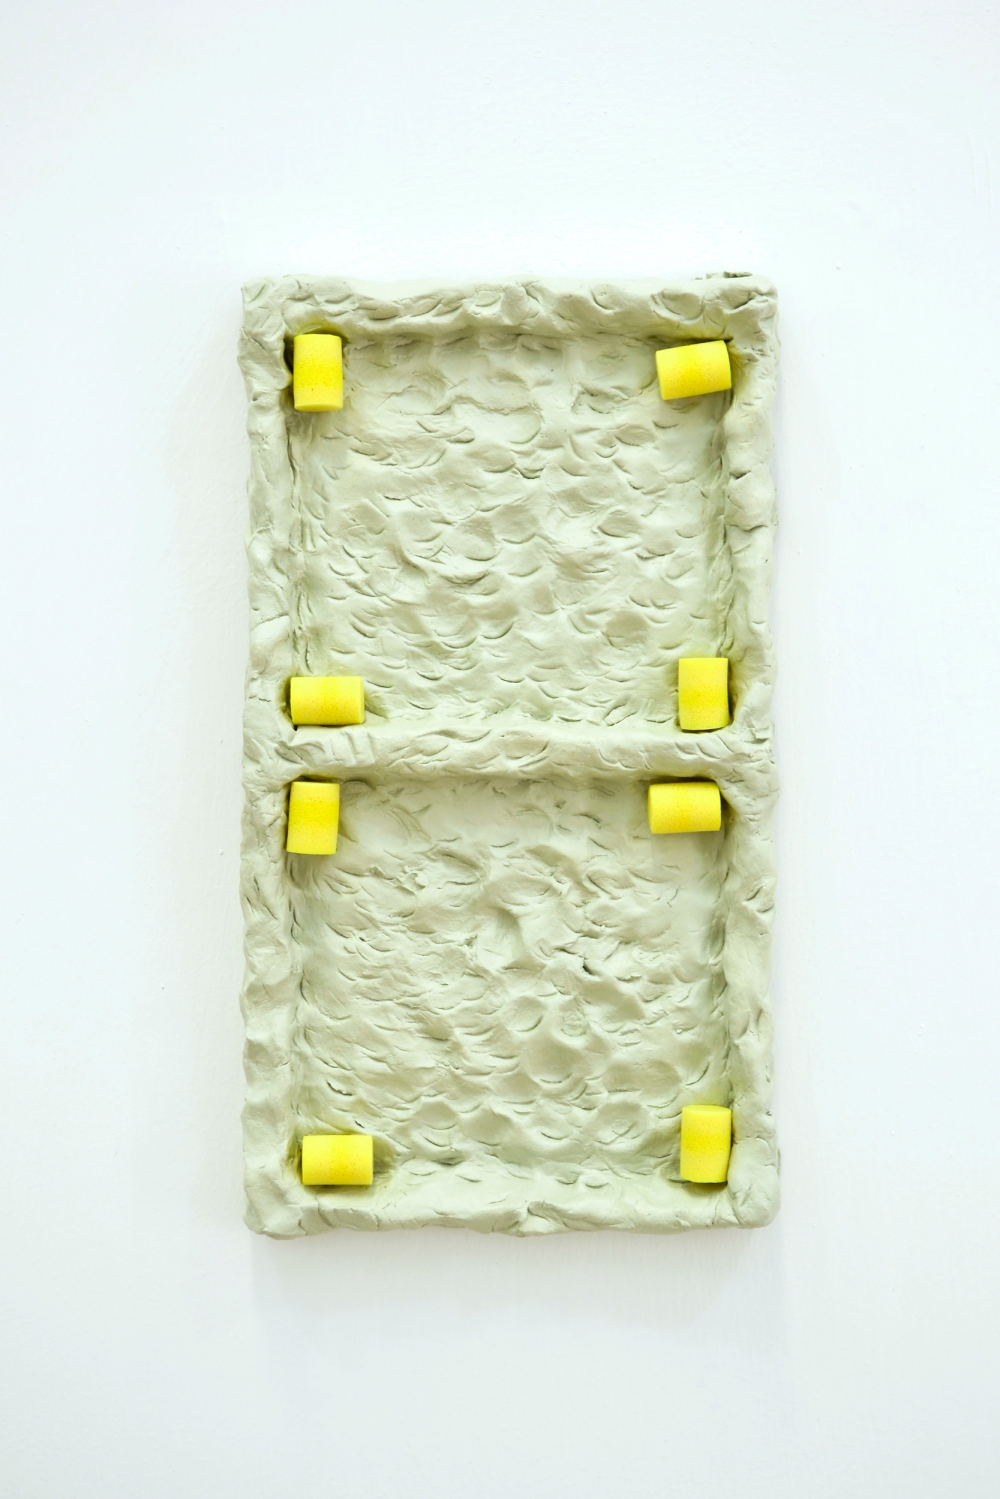 43 - Agnes Calf, Double Rotation (Earplugs), 2013, Clay, Acrylic Paint, Varnish, Foam Earplugs, 15 x 27 x 2.5cm copy